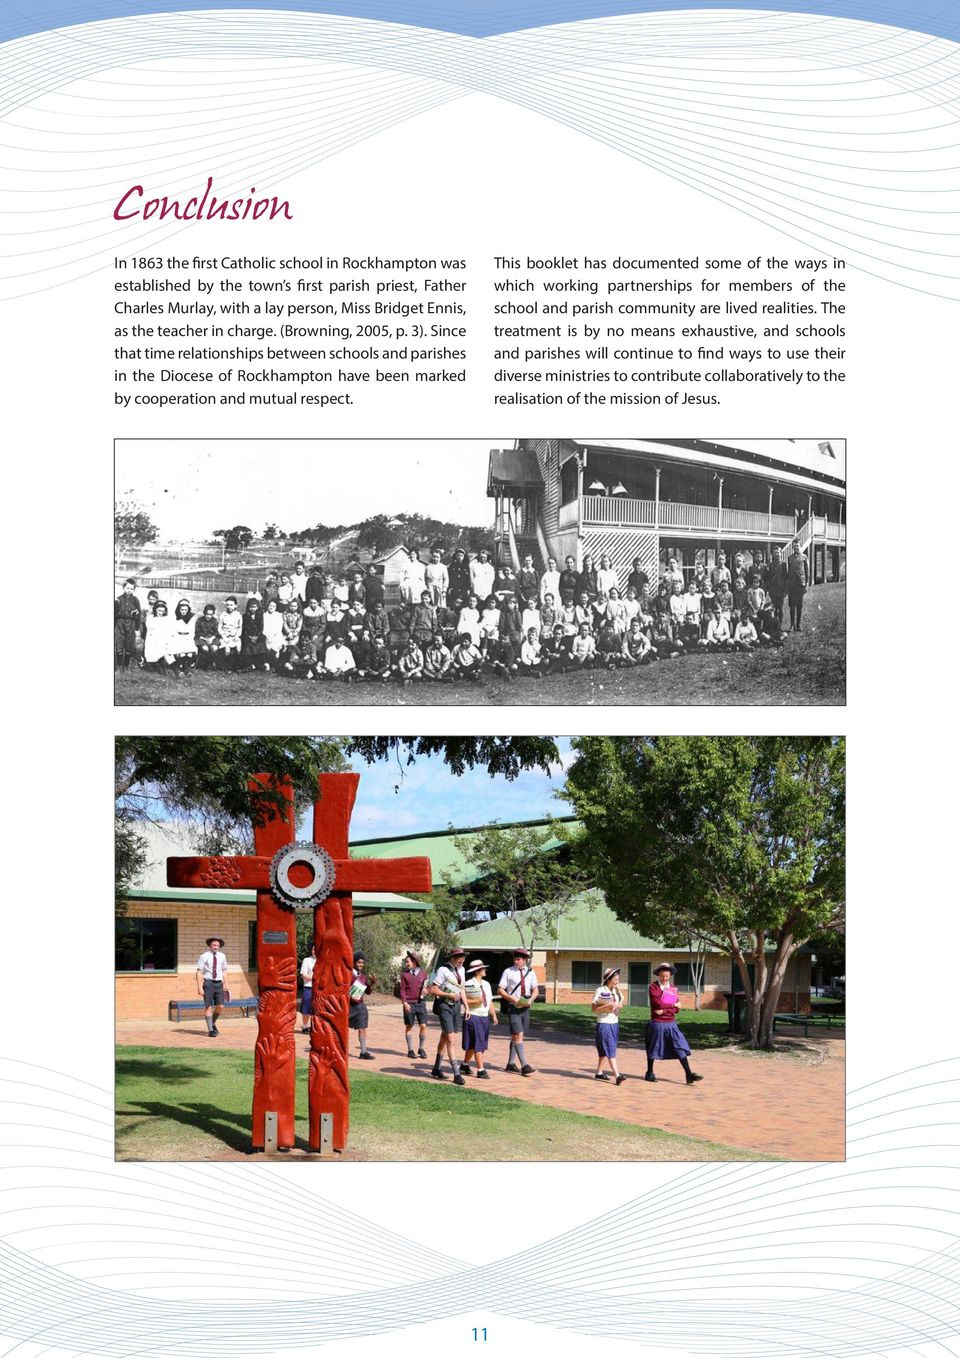 Since that time relationships between schools and parishes in the Diocese of Rockhampton have been marked by cooperation and mutual respect.